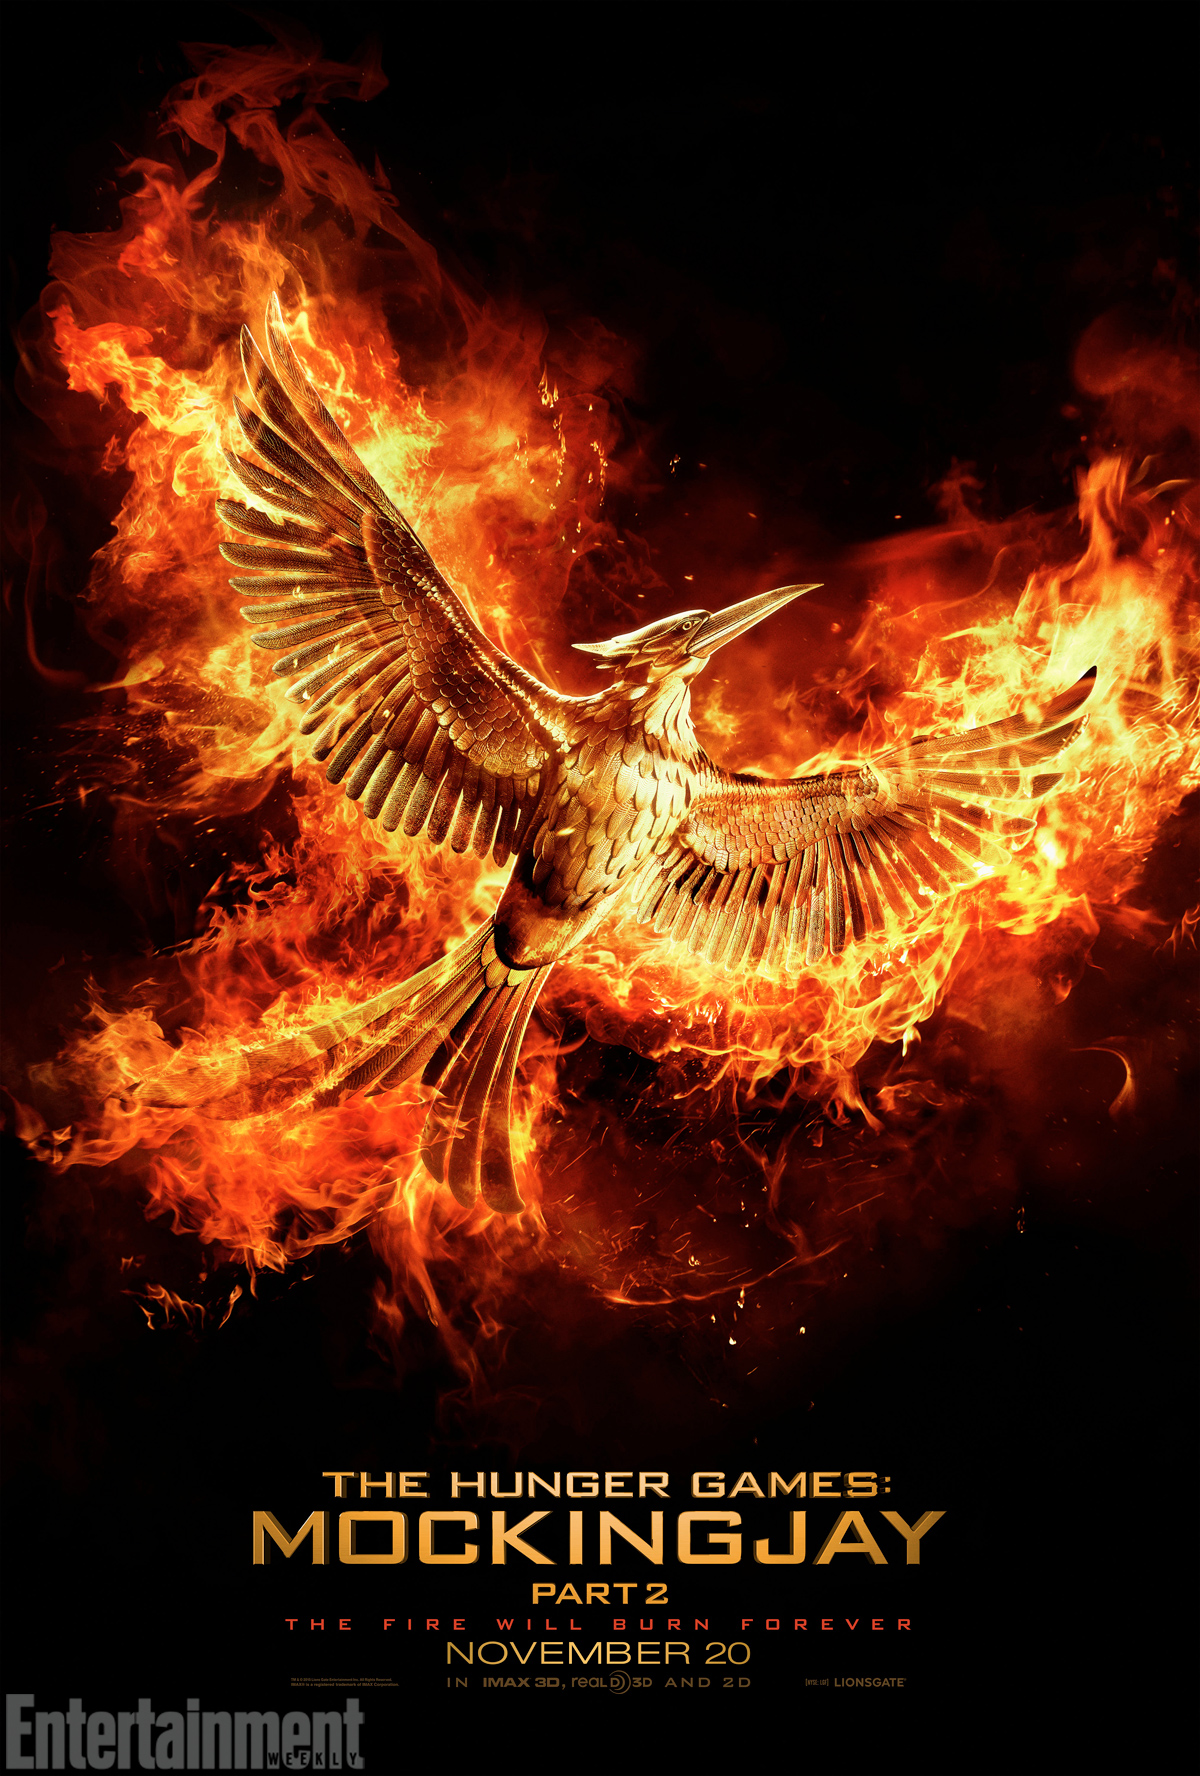 The hunger games mockingjay part 2 teaser poster the hunger games mockingjay part 2 poster biocorpaavc Choice Image